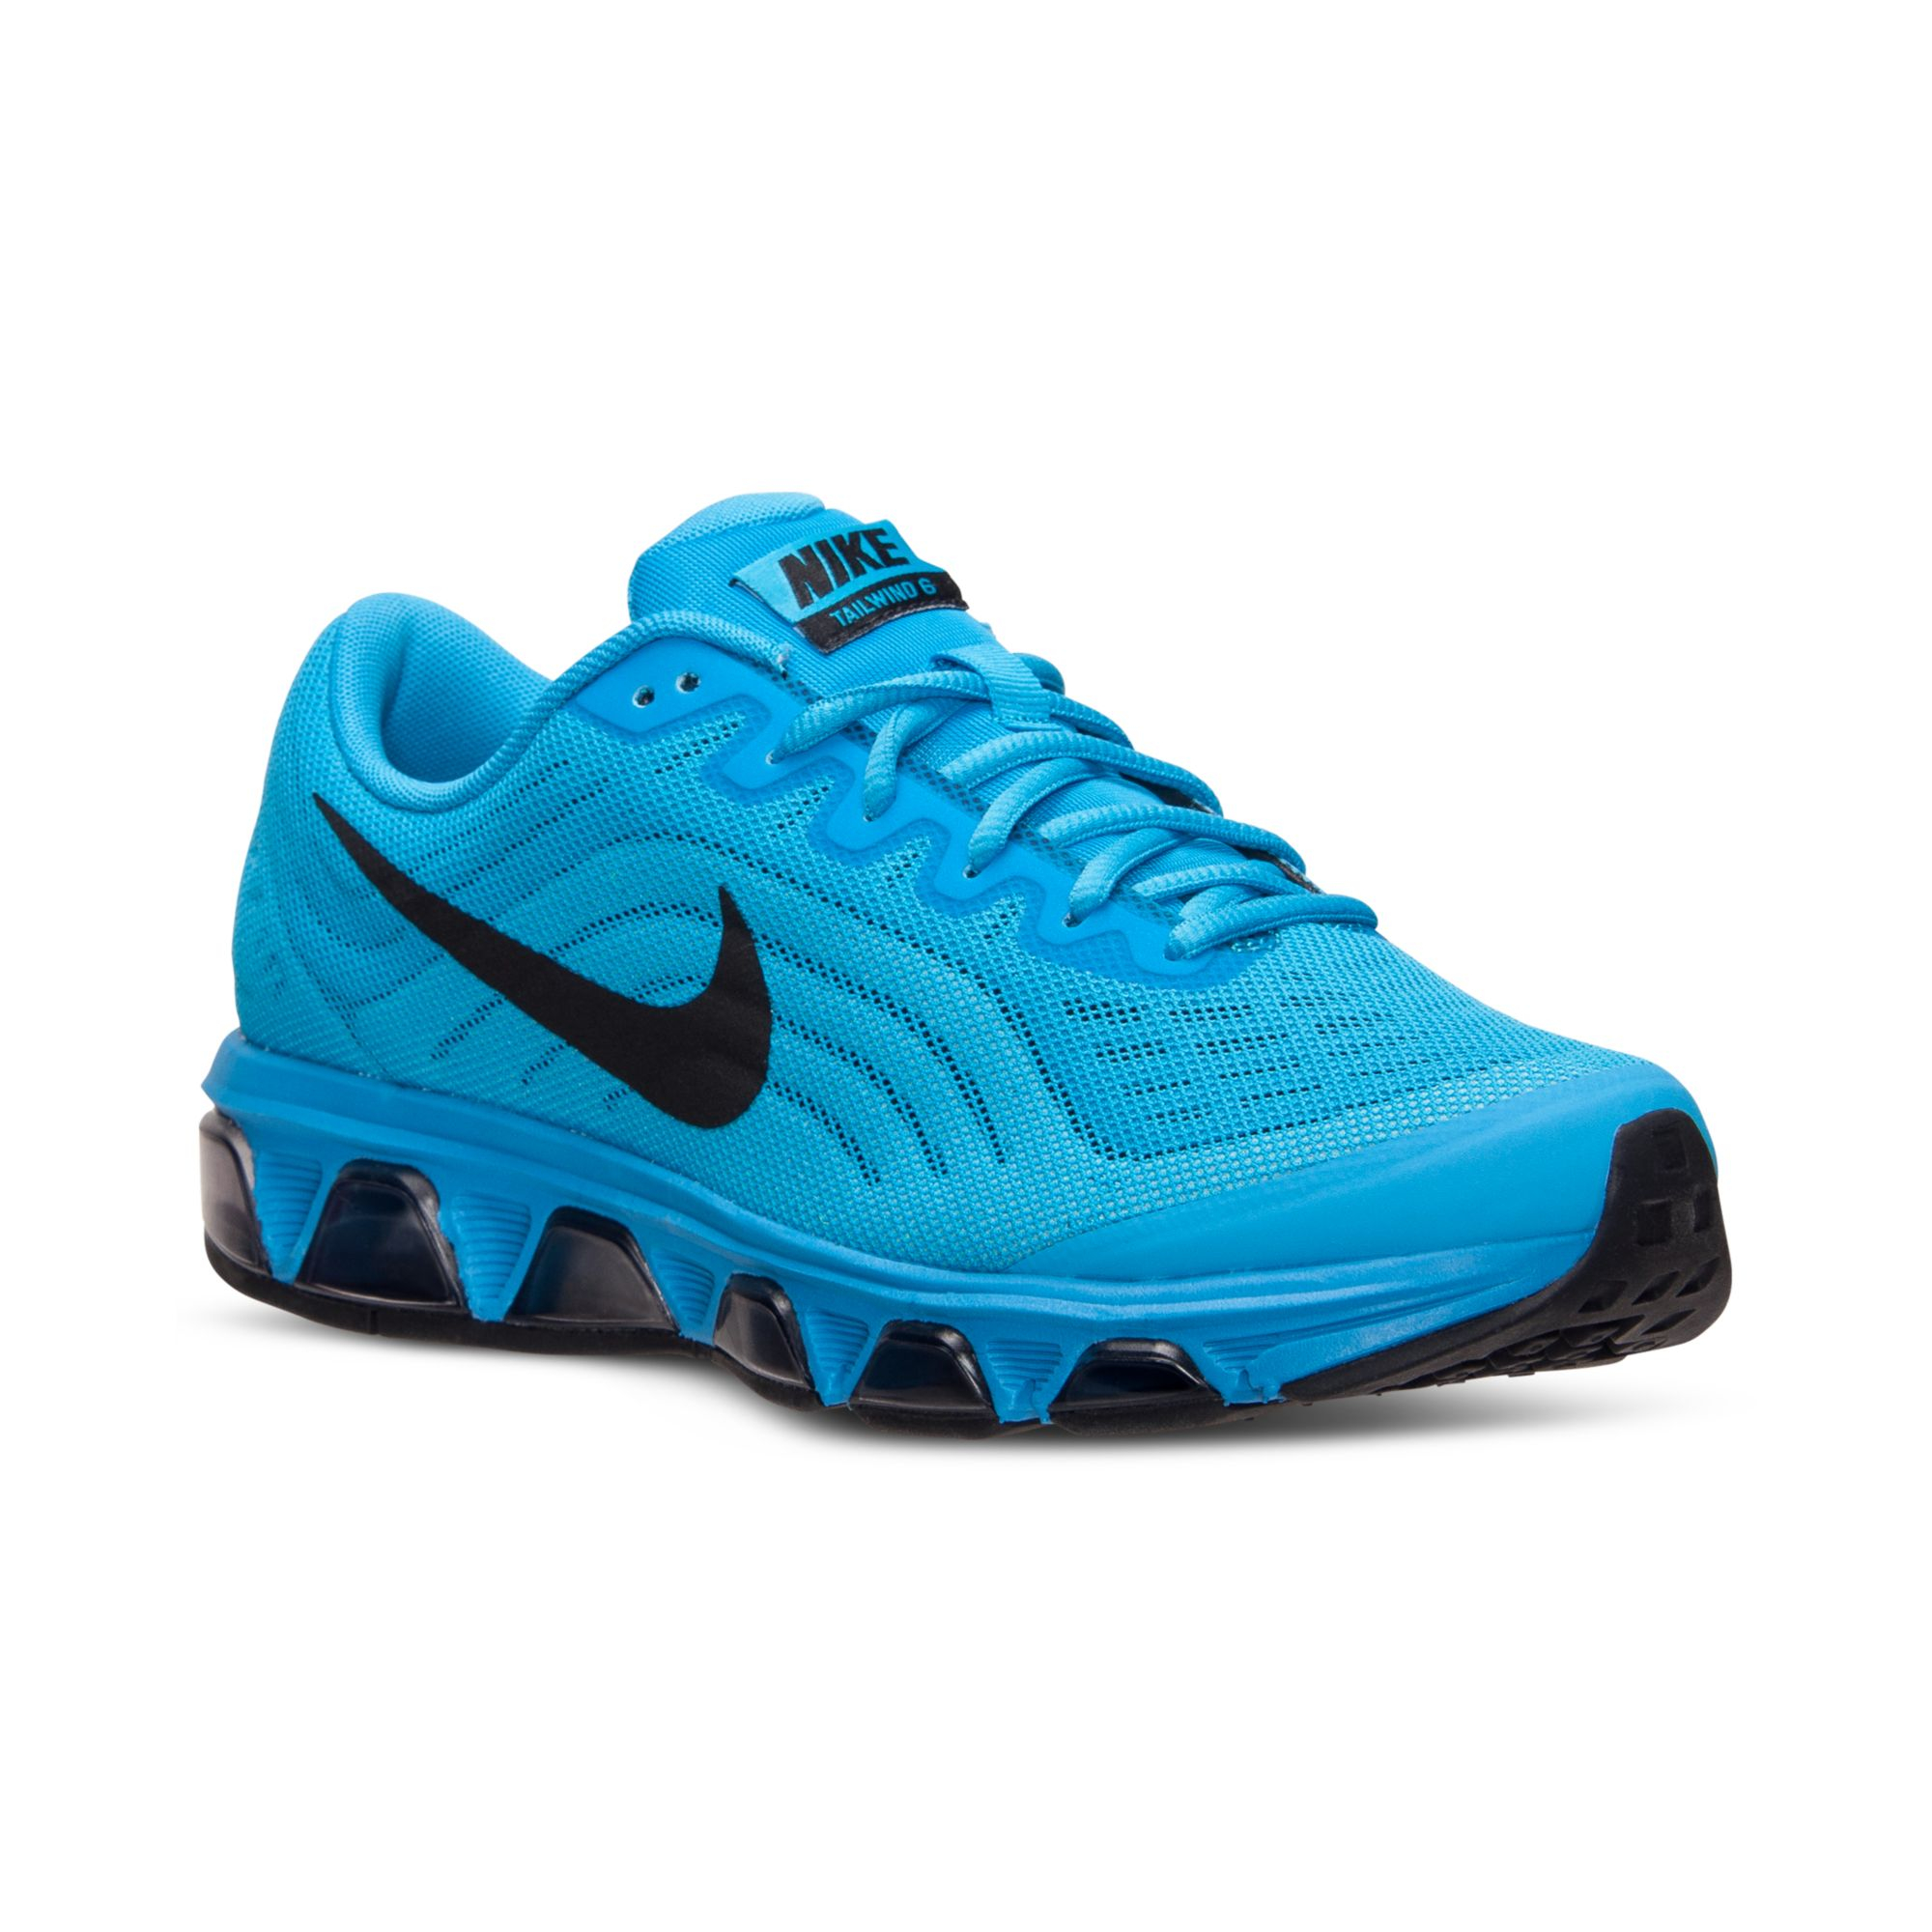 Cheap Nike Air Max Tn Size 6 Kellogg Community College